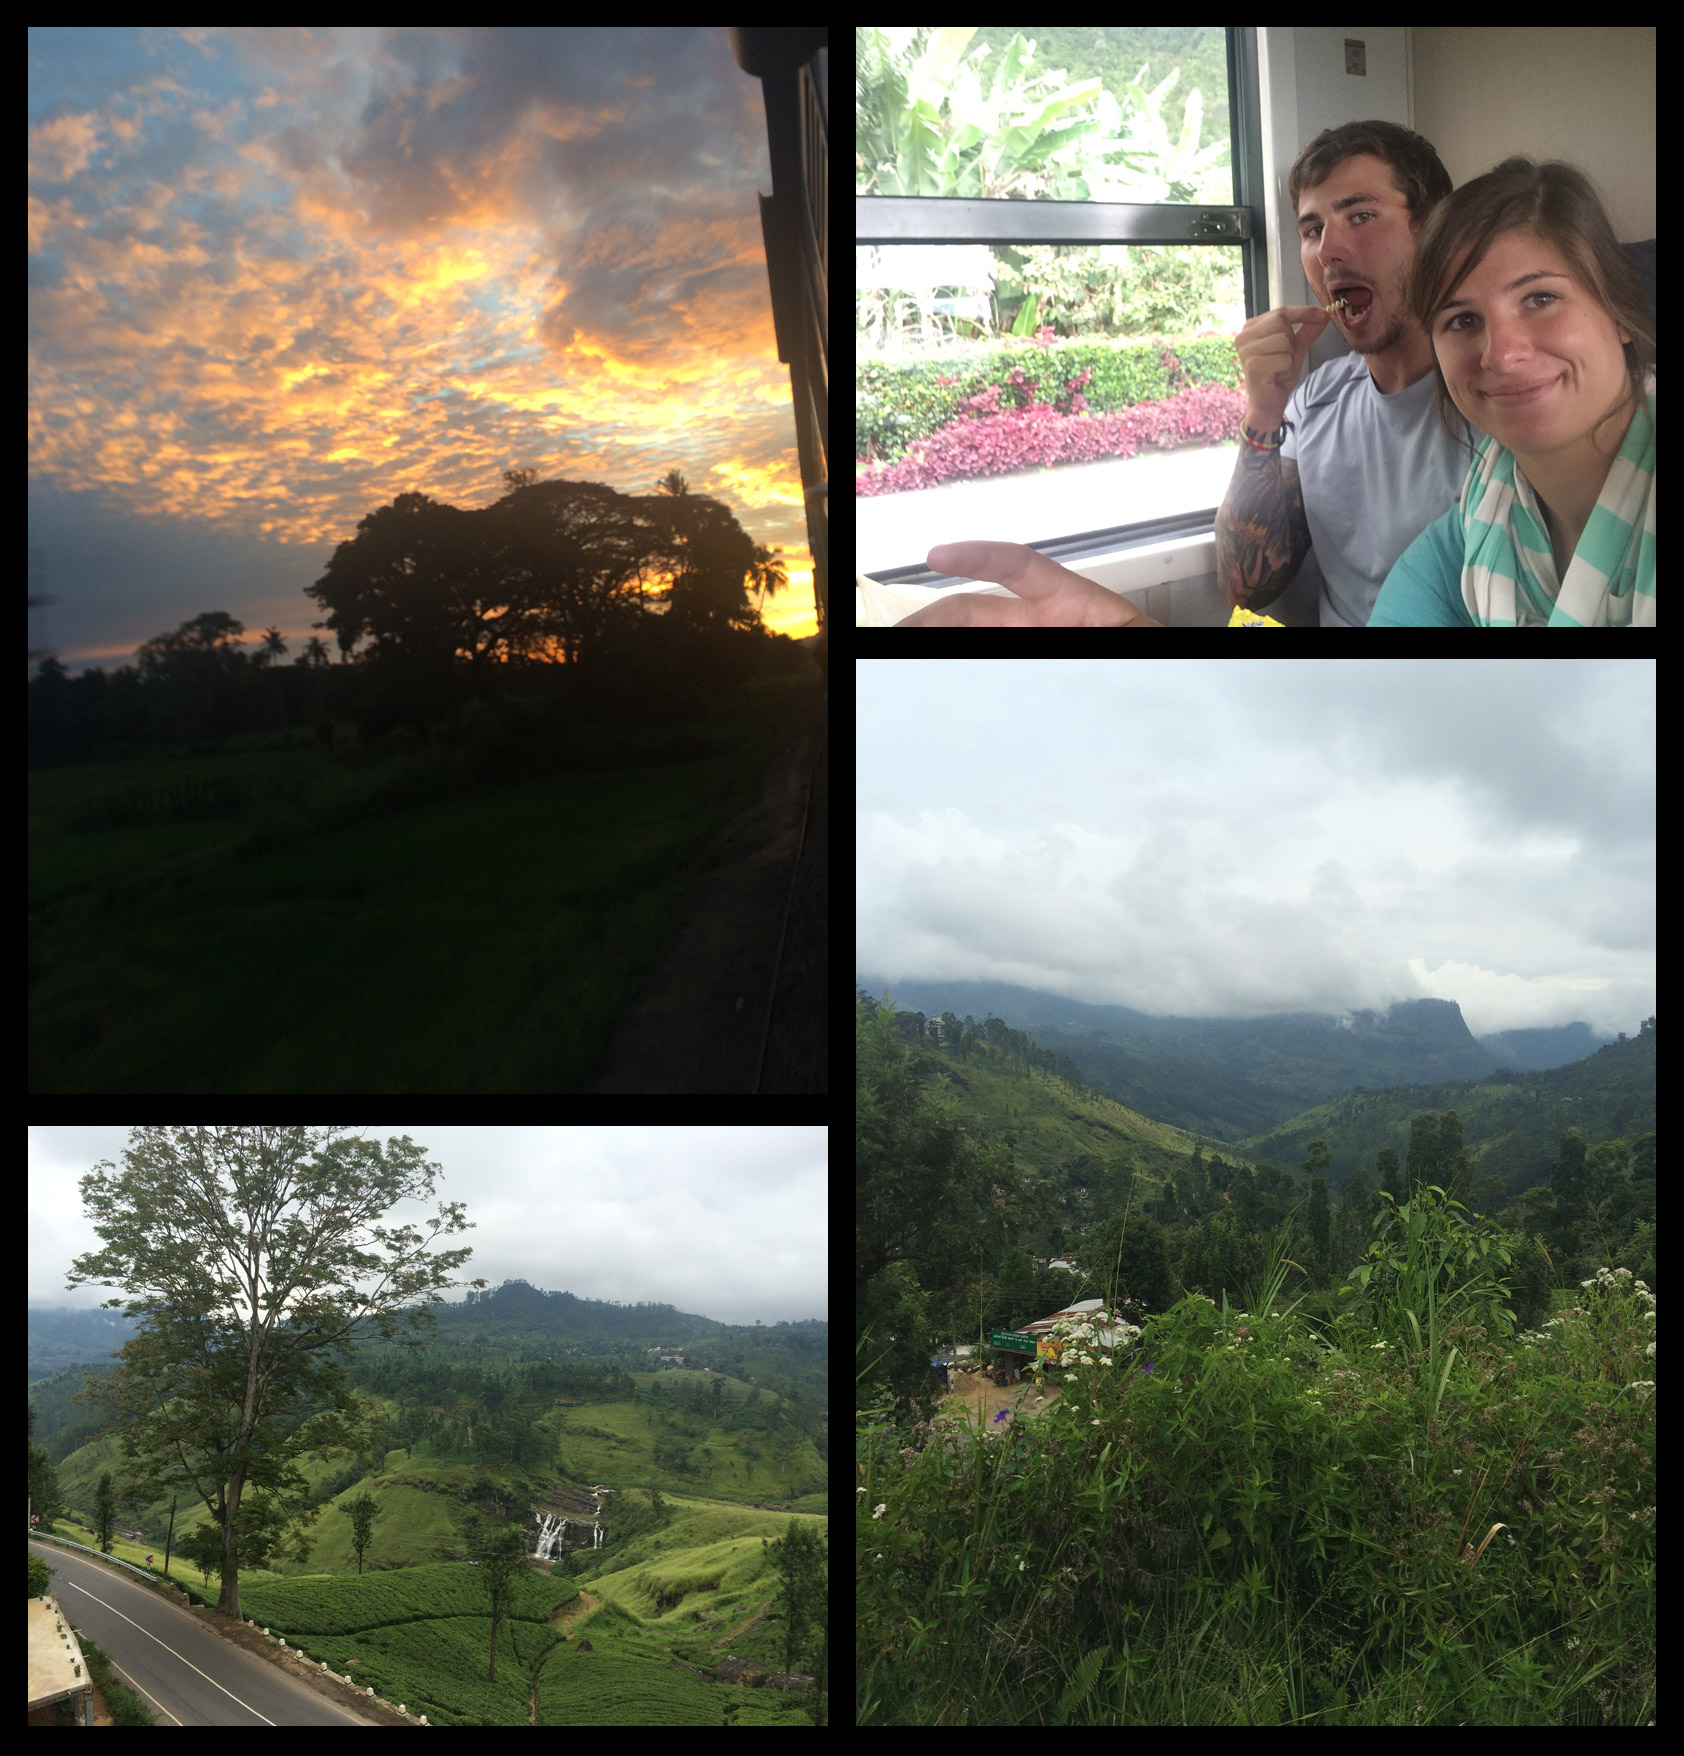 Some views from the million hour train ride!